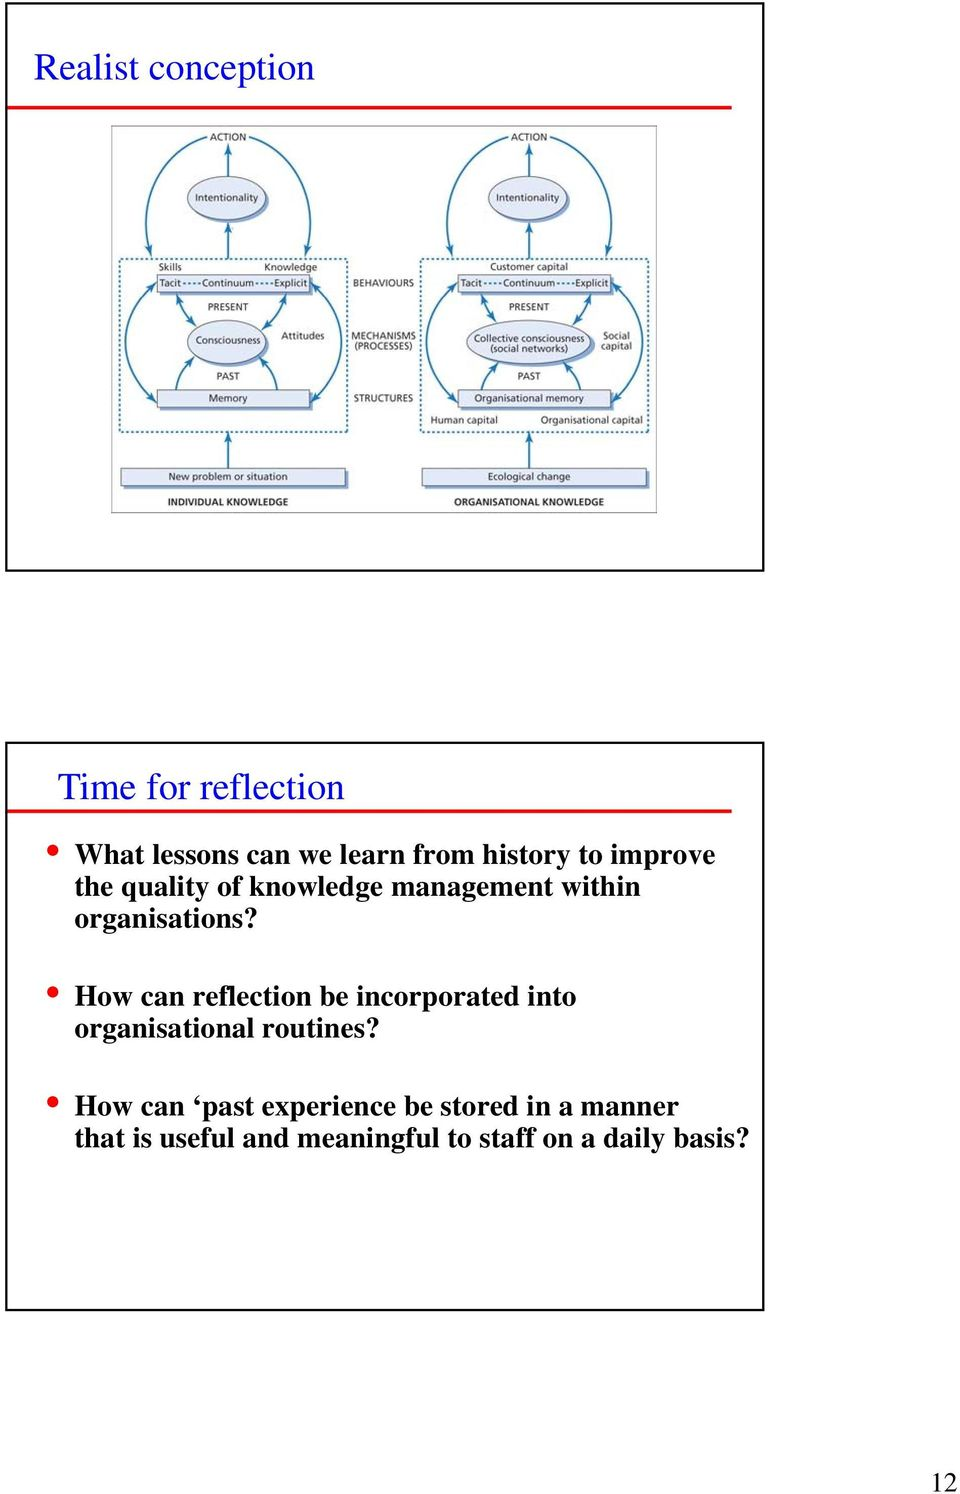 How can reflection be incorporated into organisational routines?